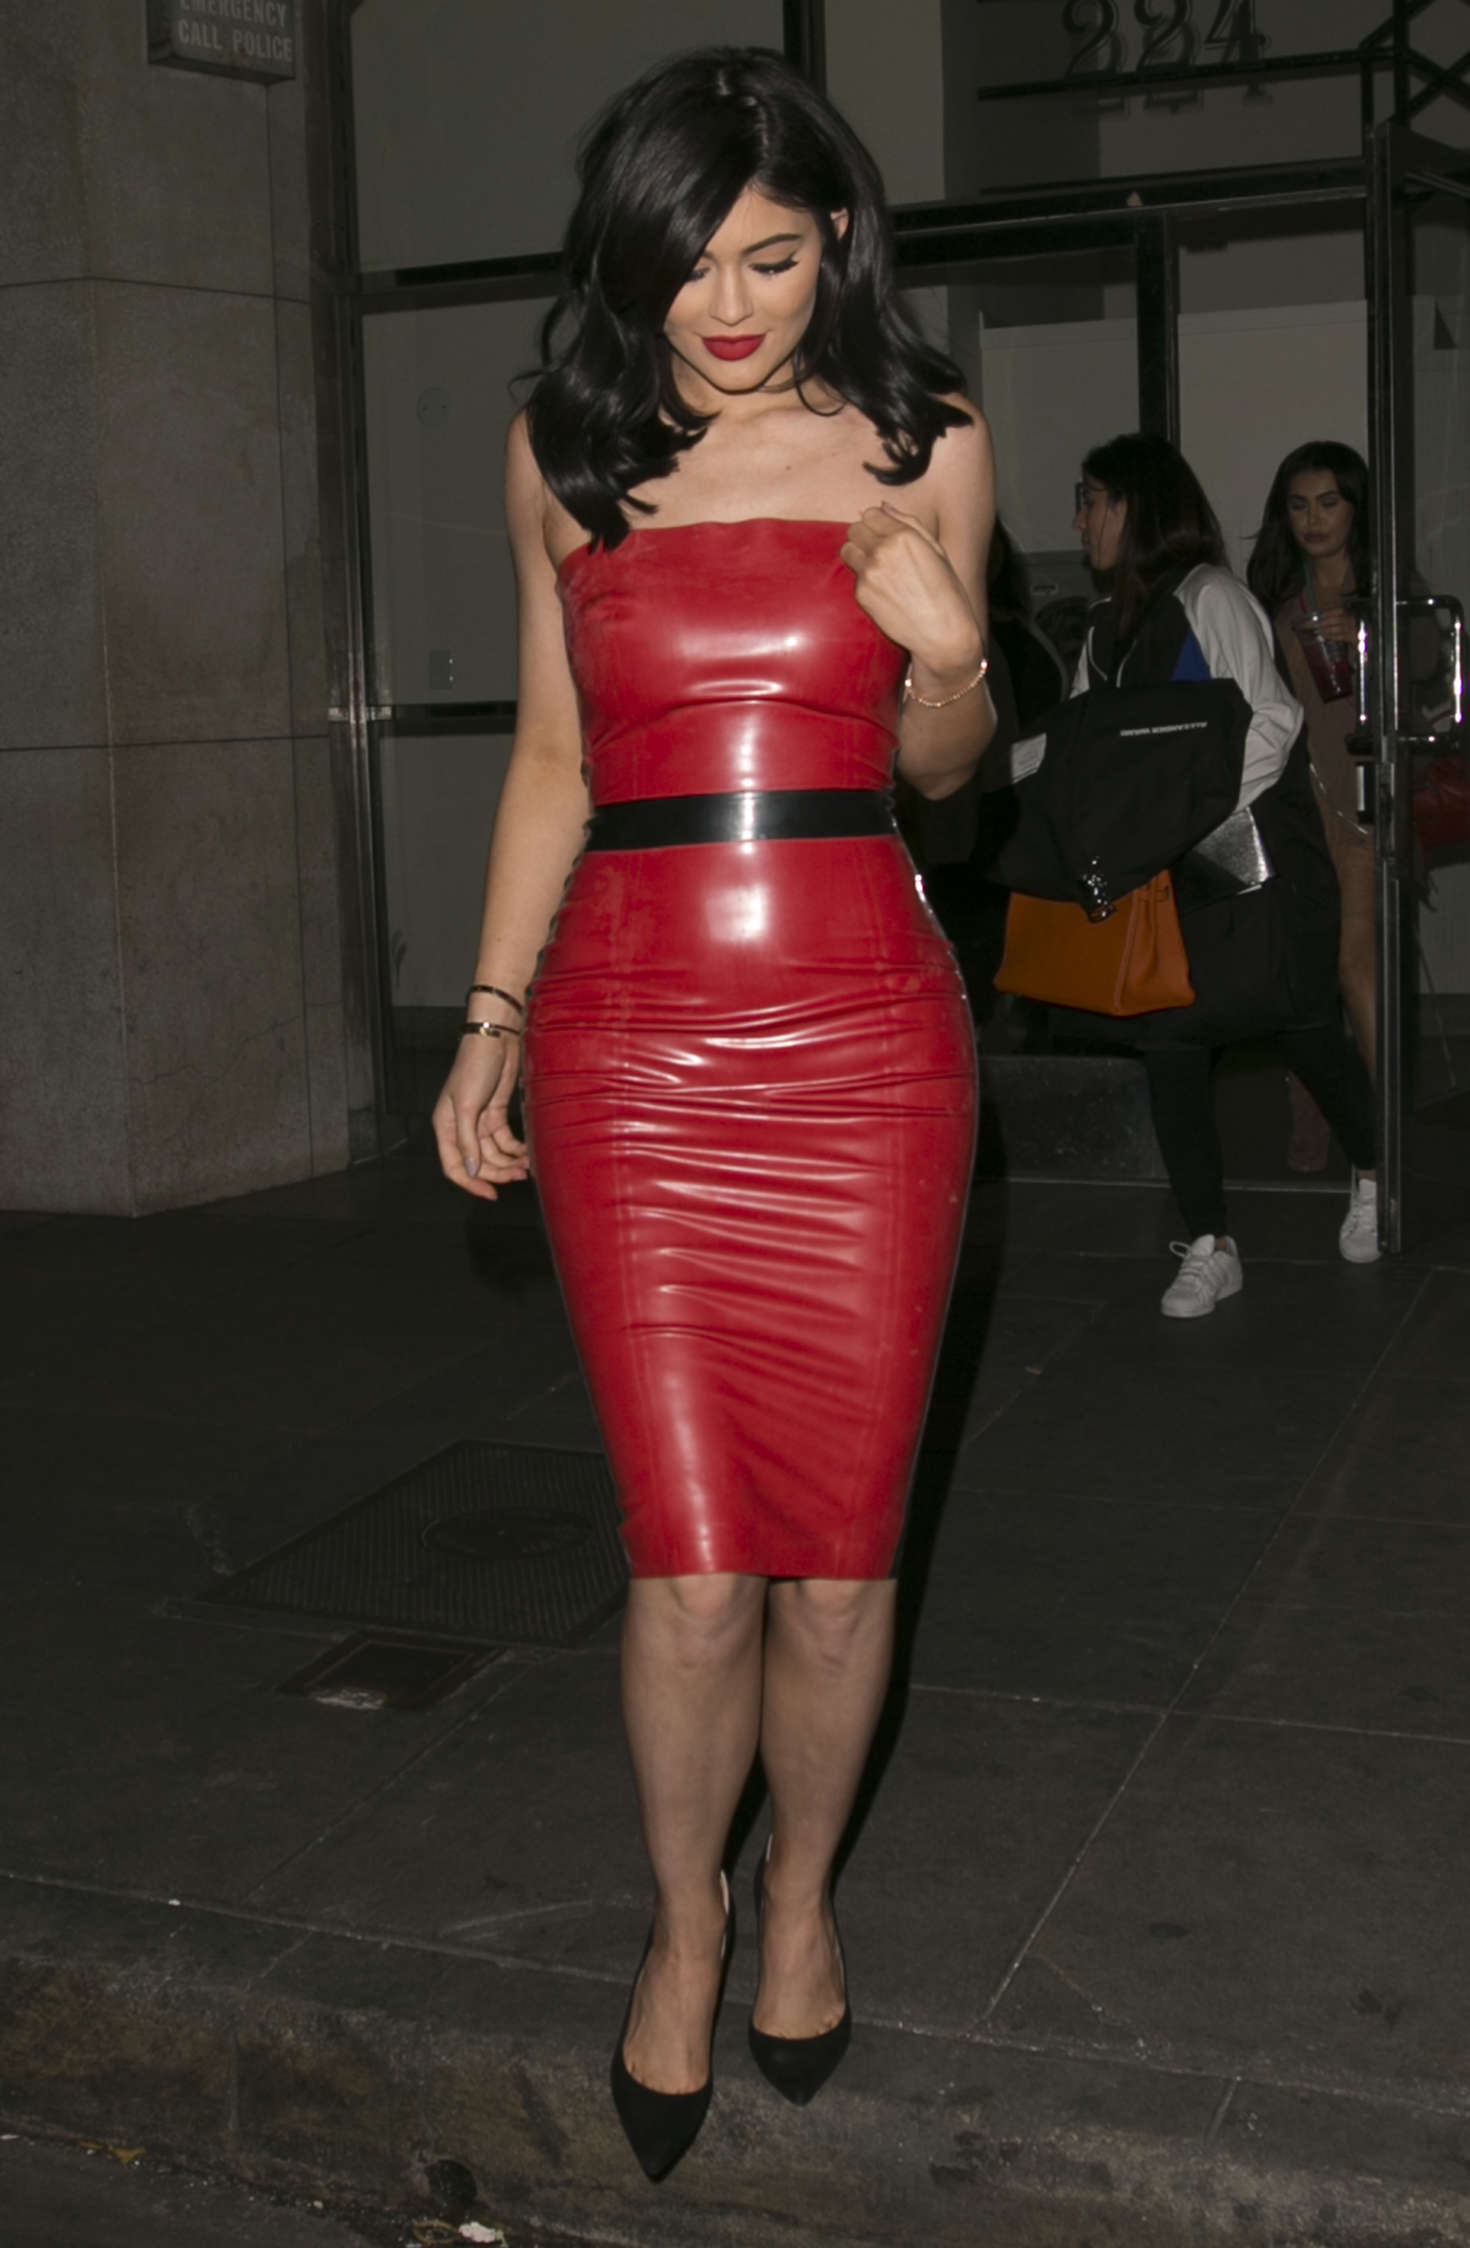 Kylie Jenner in Red Tight Dress -44 - GotCeleb